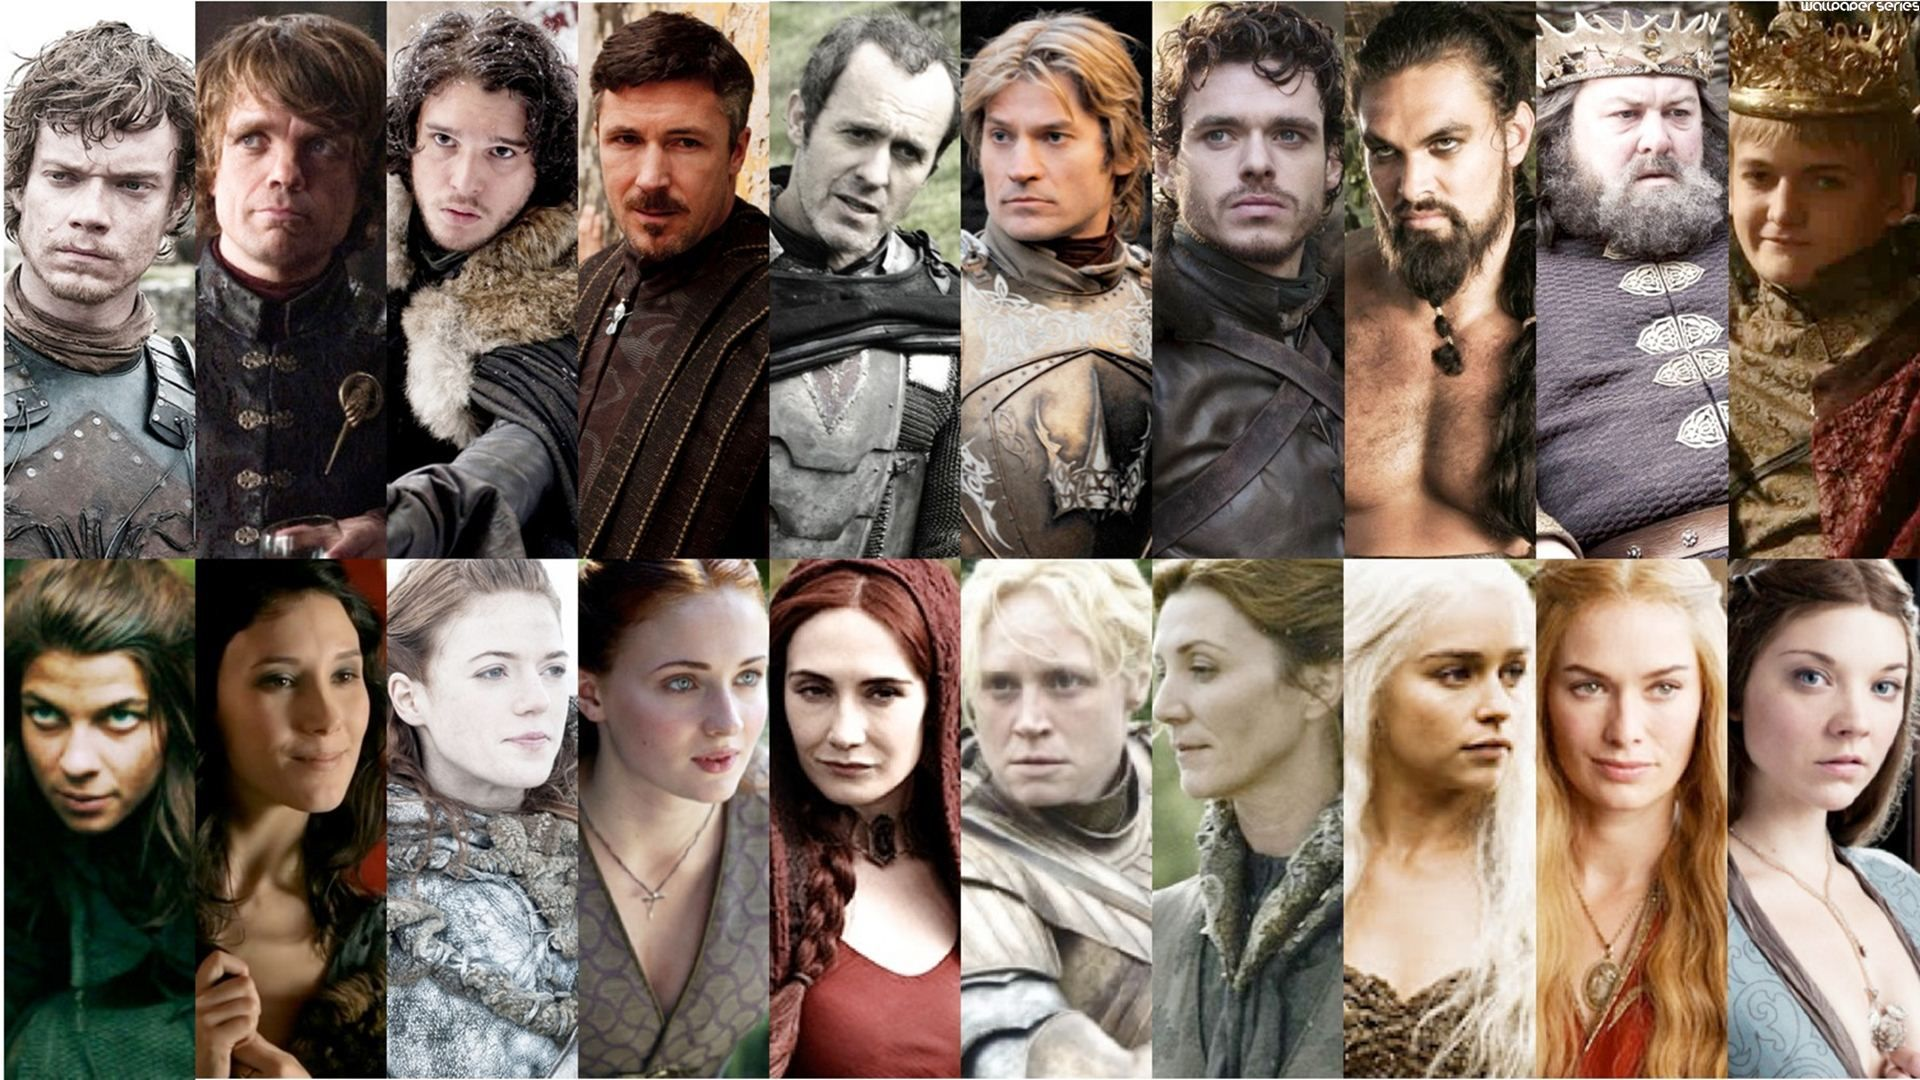 Game-of-Thrones-Characters - FIND YOUR FUTURE on iron throne characters, the knick characters, eddard stark, mad men characters, jaime lannister, arya stark, petyr baelish, brienne of tarth, robb stark, bran stark, south park characters, daenerys targaryen, daario naharis, game of thrones - season 2, tormund giantsbane, khal drogo, meera reed, the legend of korra characters, house targaryen, sandor clegane, loras tyrell, george r. r. martin, robin arryn, a dance with dragons, z nation characters, jeor mormont, margaery tyrell, winter is coming, the winds of winter, olenna tyrell, podrick payne, jorah mormont, ramsay bolton, family guy characters, glee characters, cersei lannister, theon greyjoy, silicon valley characters, a golden crown, renly baratheon, revenge characters, walking dead characters, alfie owen-allen, tywin lannister, tales of dunk and egg, grey worm, barristan selmy, supernatural characters, seinfeld characters, the simpsons characters, a clash of kings, robert baratheon, a storm of swords, lord snow, joffrey baratheon, tommen baratheon, tyrion lannister, davos seaworth, rickon stark, jon snow, a feast for crows, fire and blood, dothraki language, stannis baratheon, the prince of winterfell, roose bolton, game of thrones - season 1, oberyn martell, viserys targaryen, true detective characters, gregor clegane, samwell tarly, a song of ice and fire, breaking bad characters, boardwalk empire characters, futurama characters, ellaria sand, sons of anarchy characters, catelyn stark, sansa stark, finding carter characters,